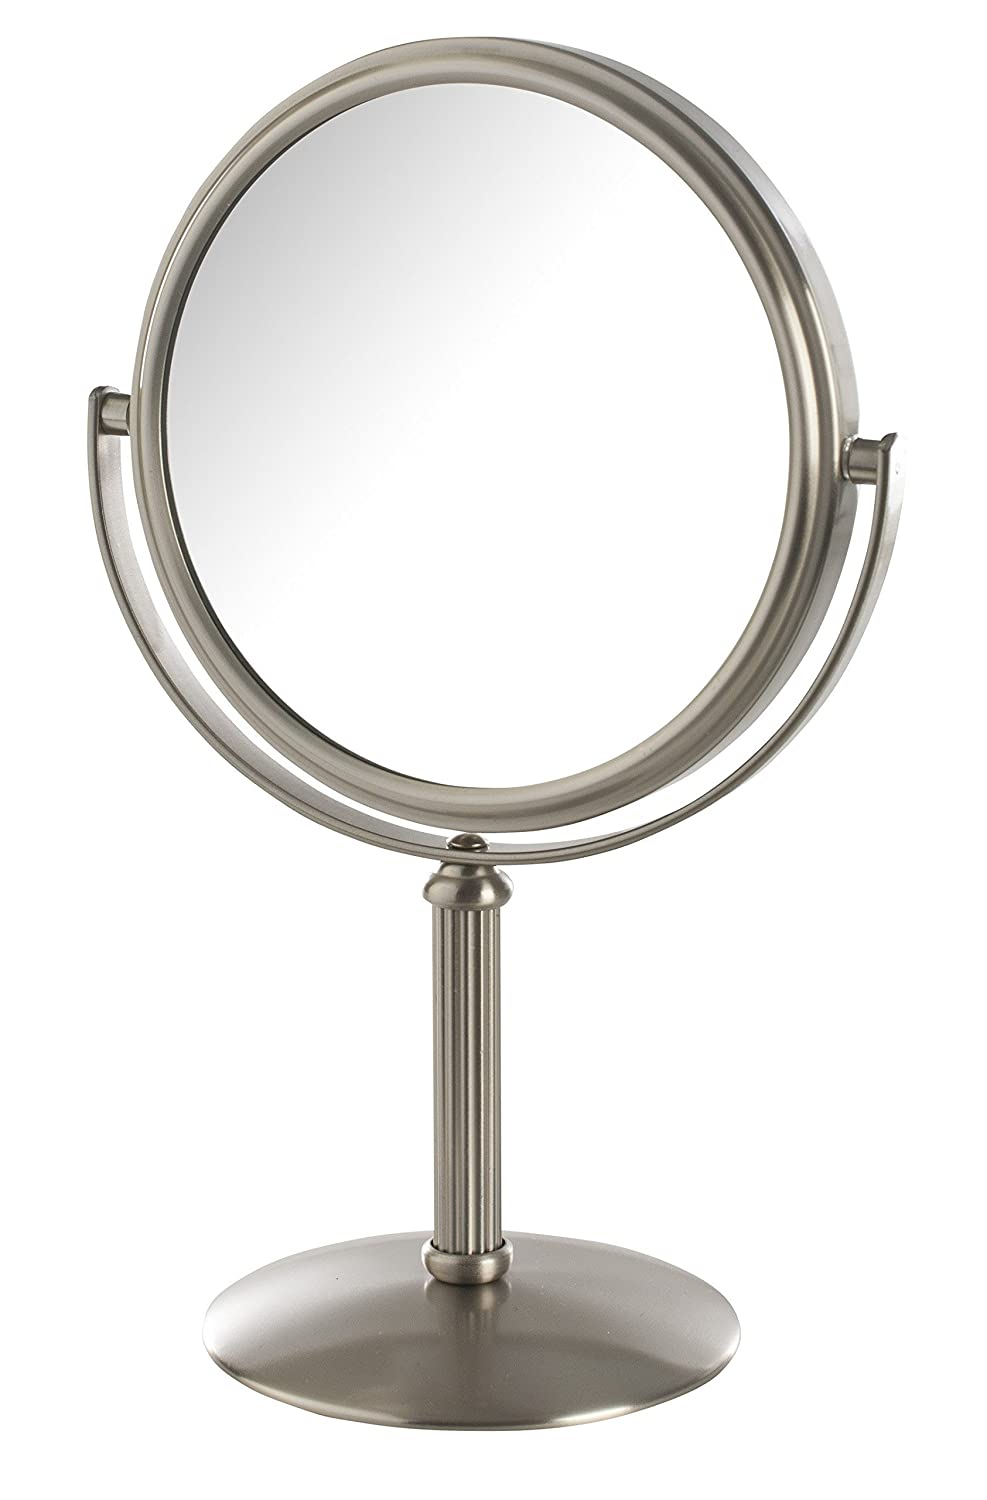 Jerdon MC105N Dual-Sided 5X/1X Magnification Table Top Makeup Mirror, Nickel Finish, 1 Count